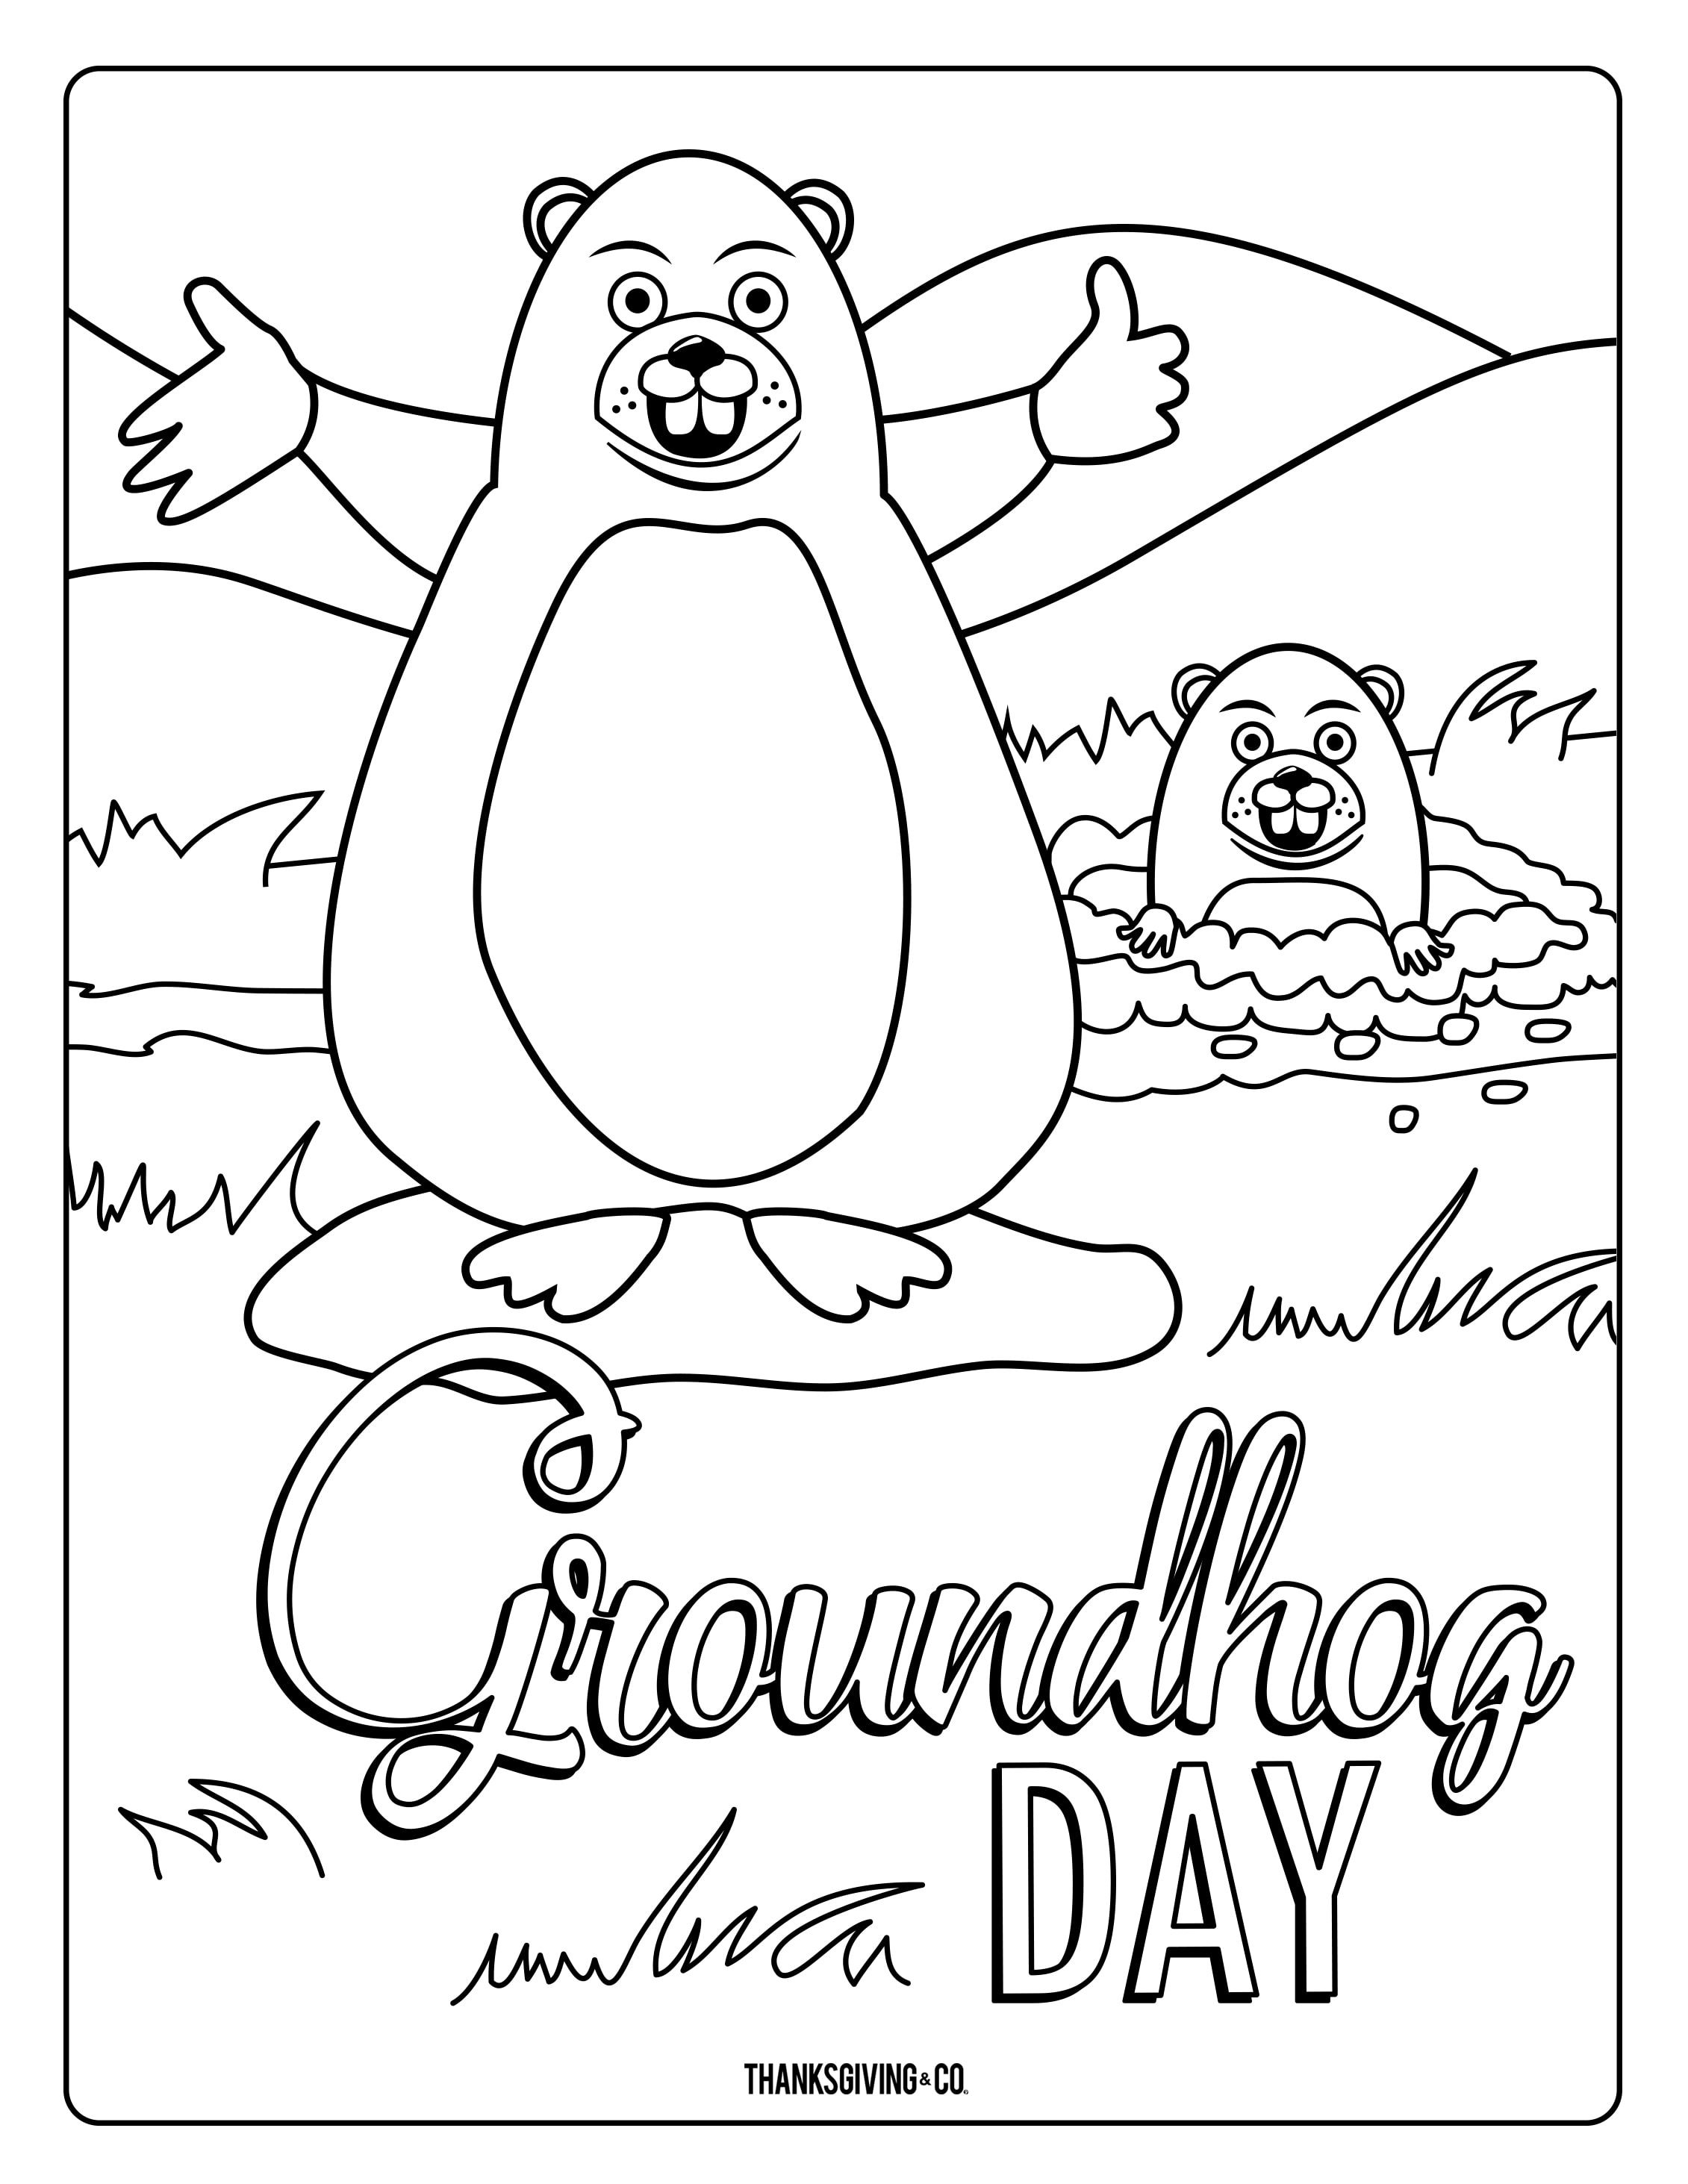 4 Adorable Groundhog Day Coloring Pages For Kids In